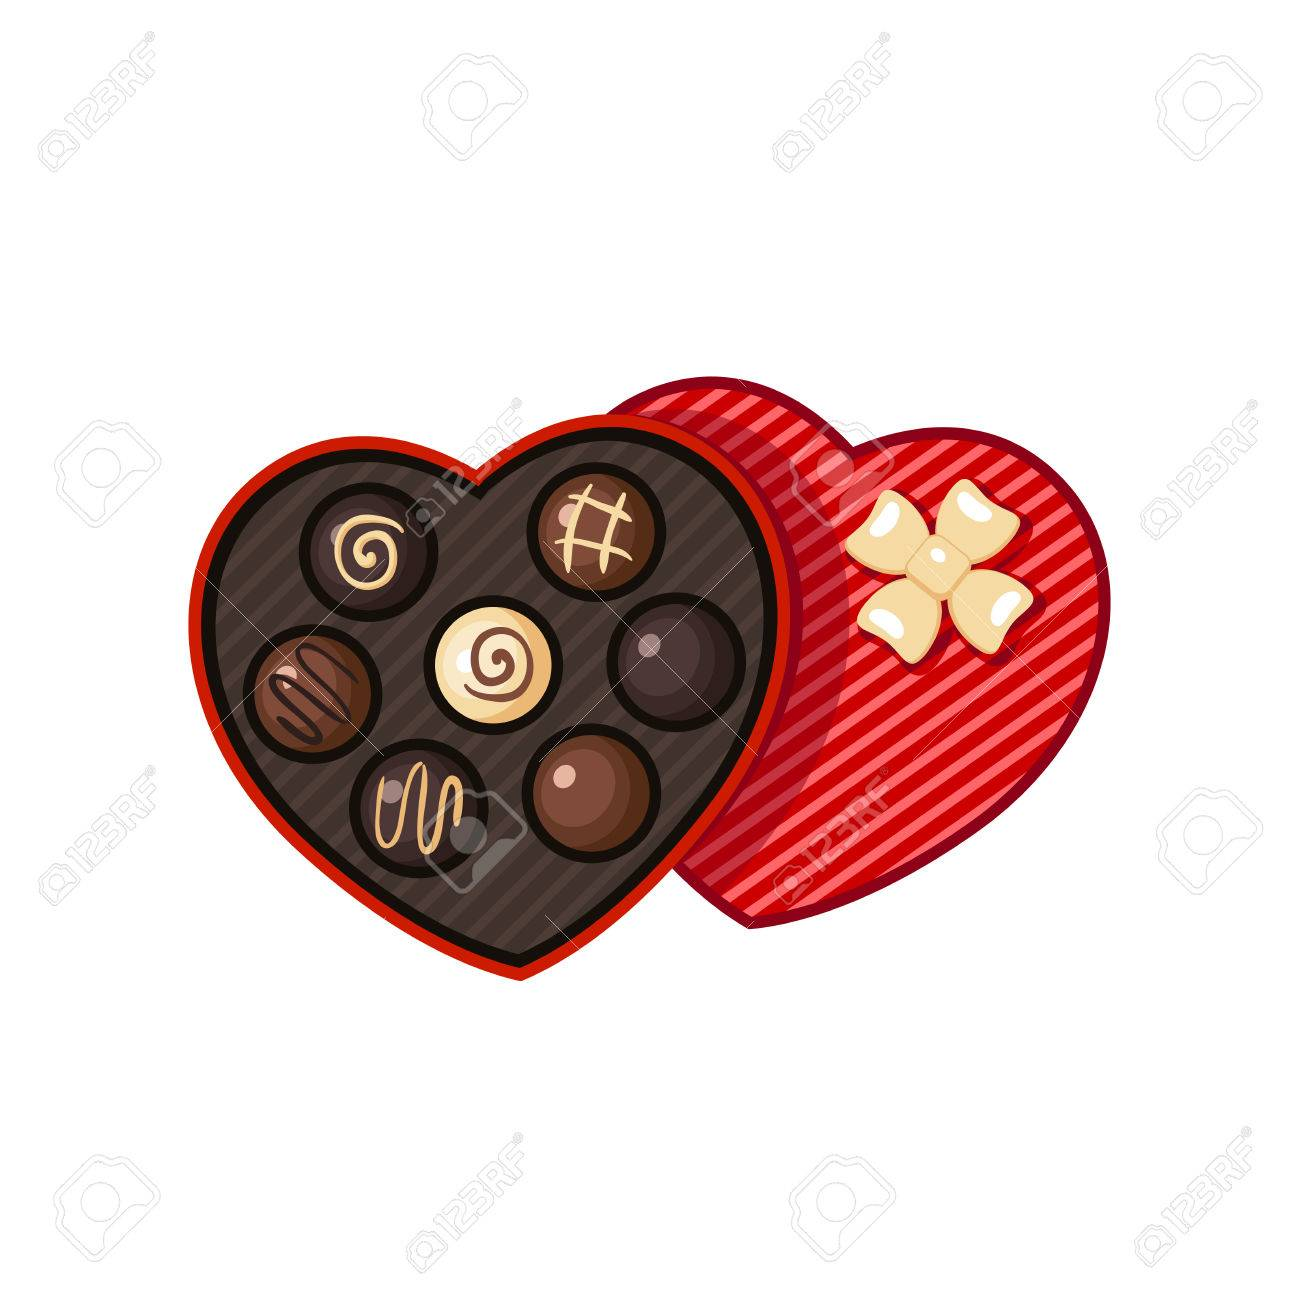 Heart Shaped Valentine Day Candy Box With Chocolate Bon Bons